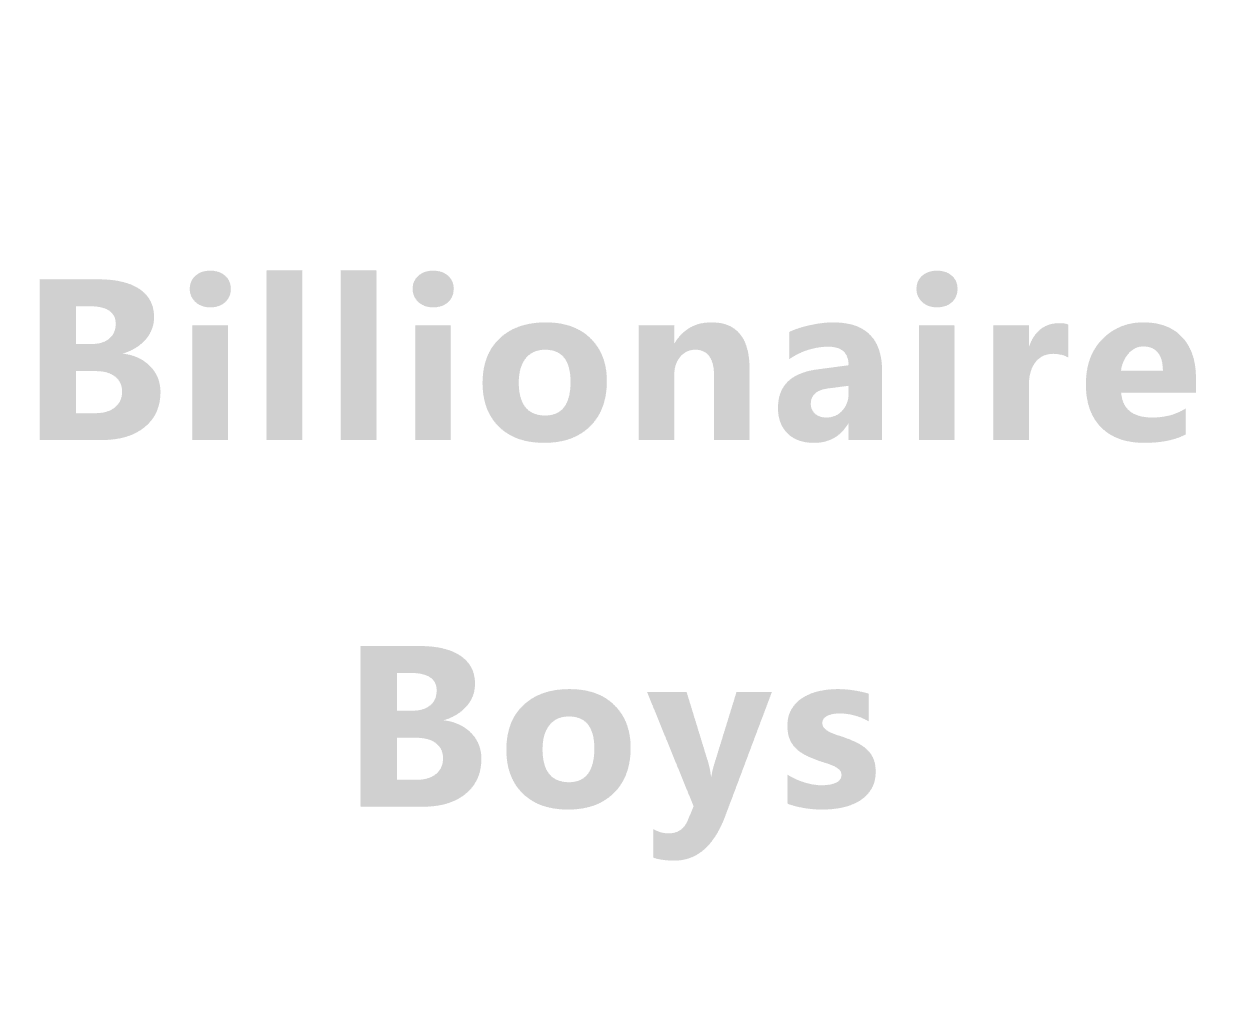 Billionaire Boys